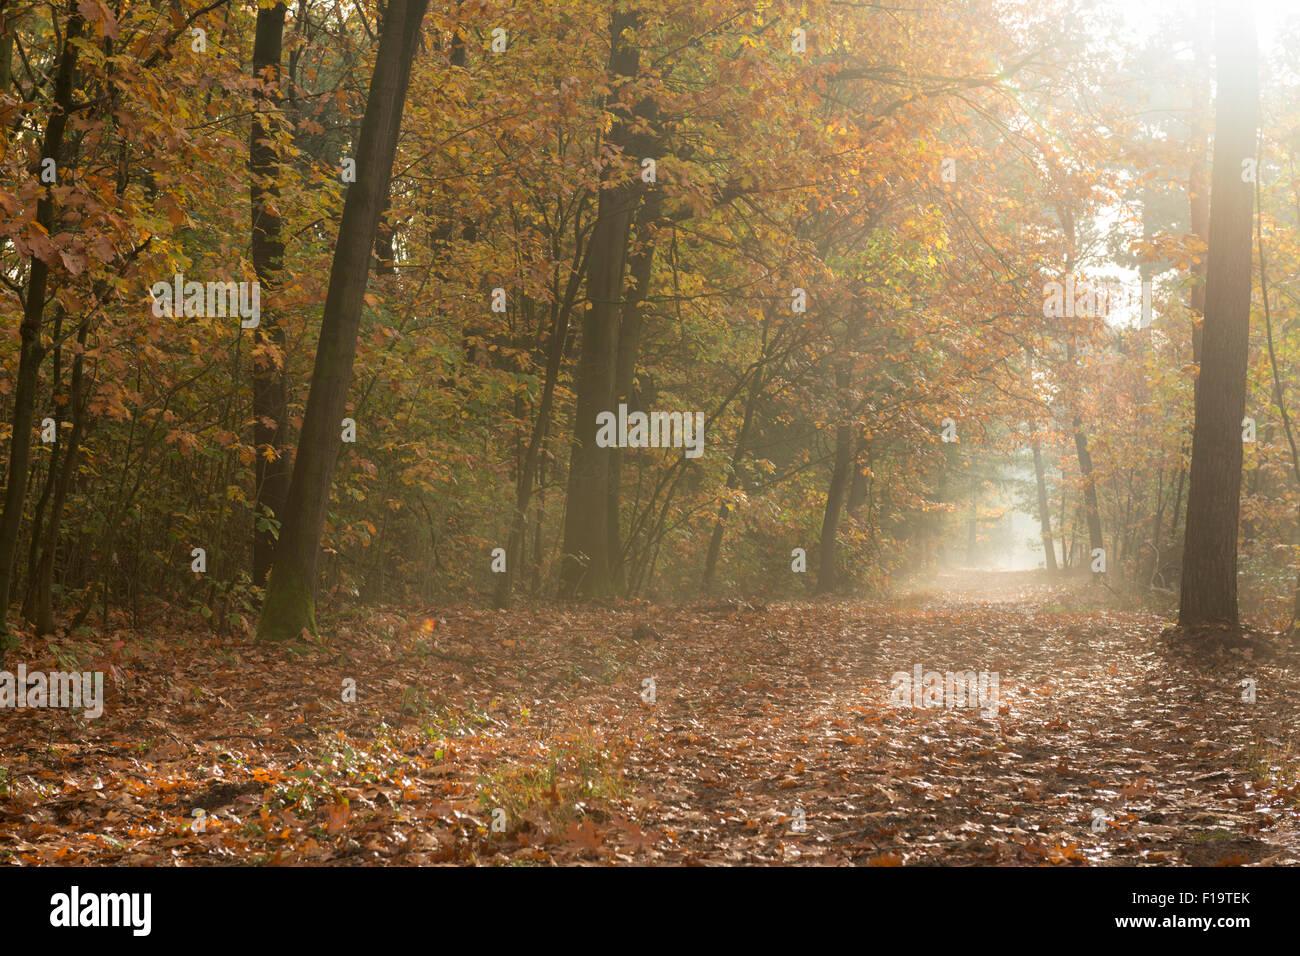 Autumnal forest path in golden light invites for a recreational day in the woods, golden October. - Stock Image